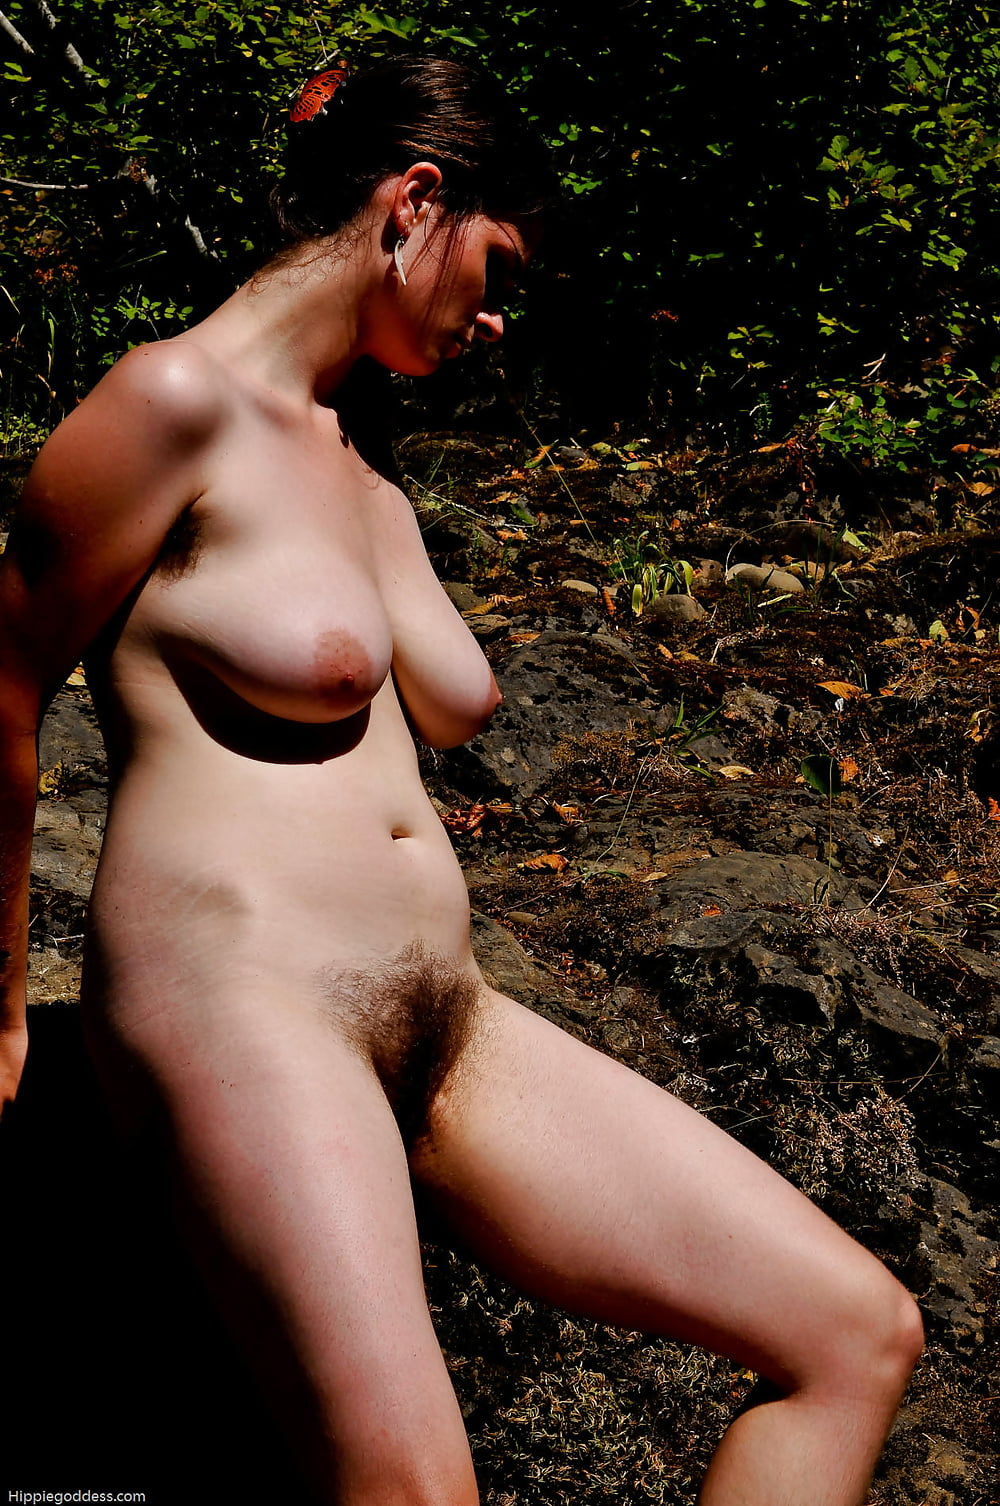 Nude hippie picture